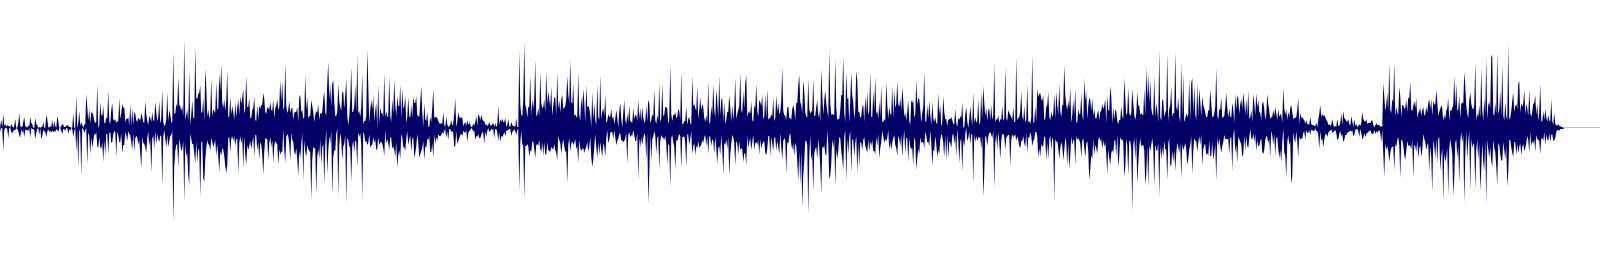 waveform of track #134568